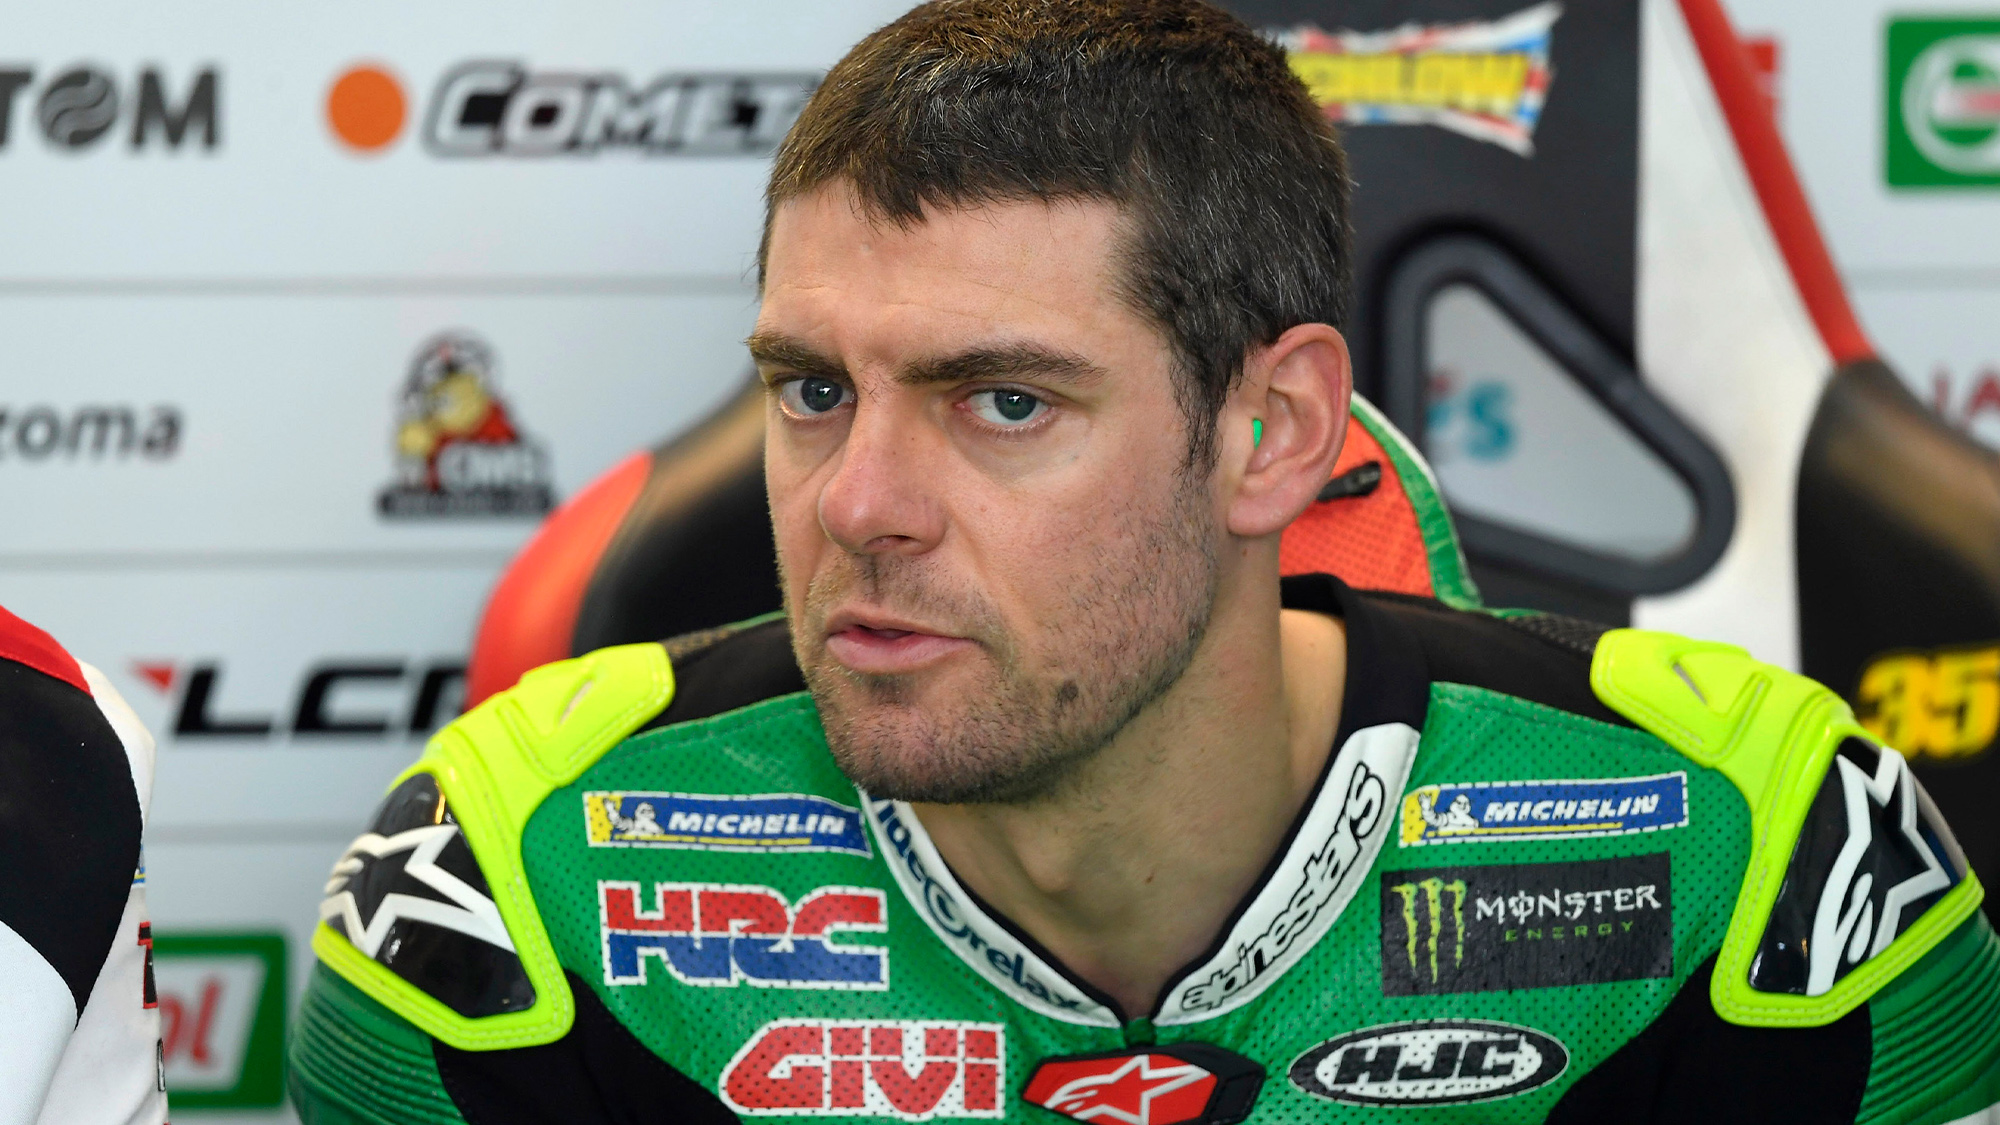 Cal Crutchlow confirmed as 2021 Yamaha MotoGP test rider